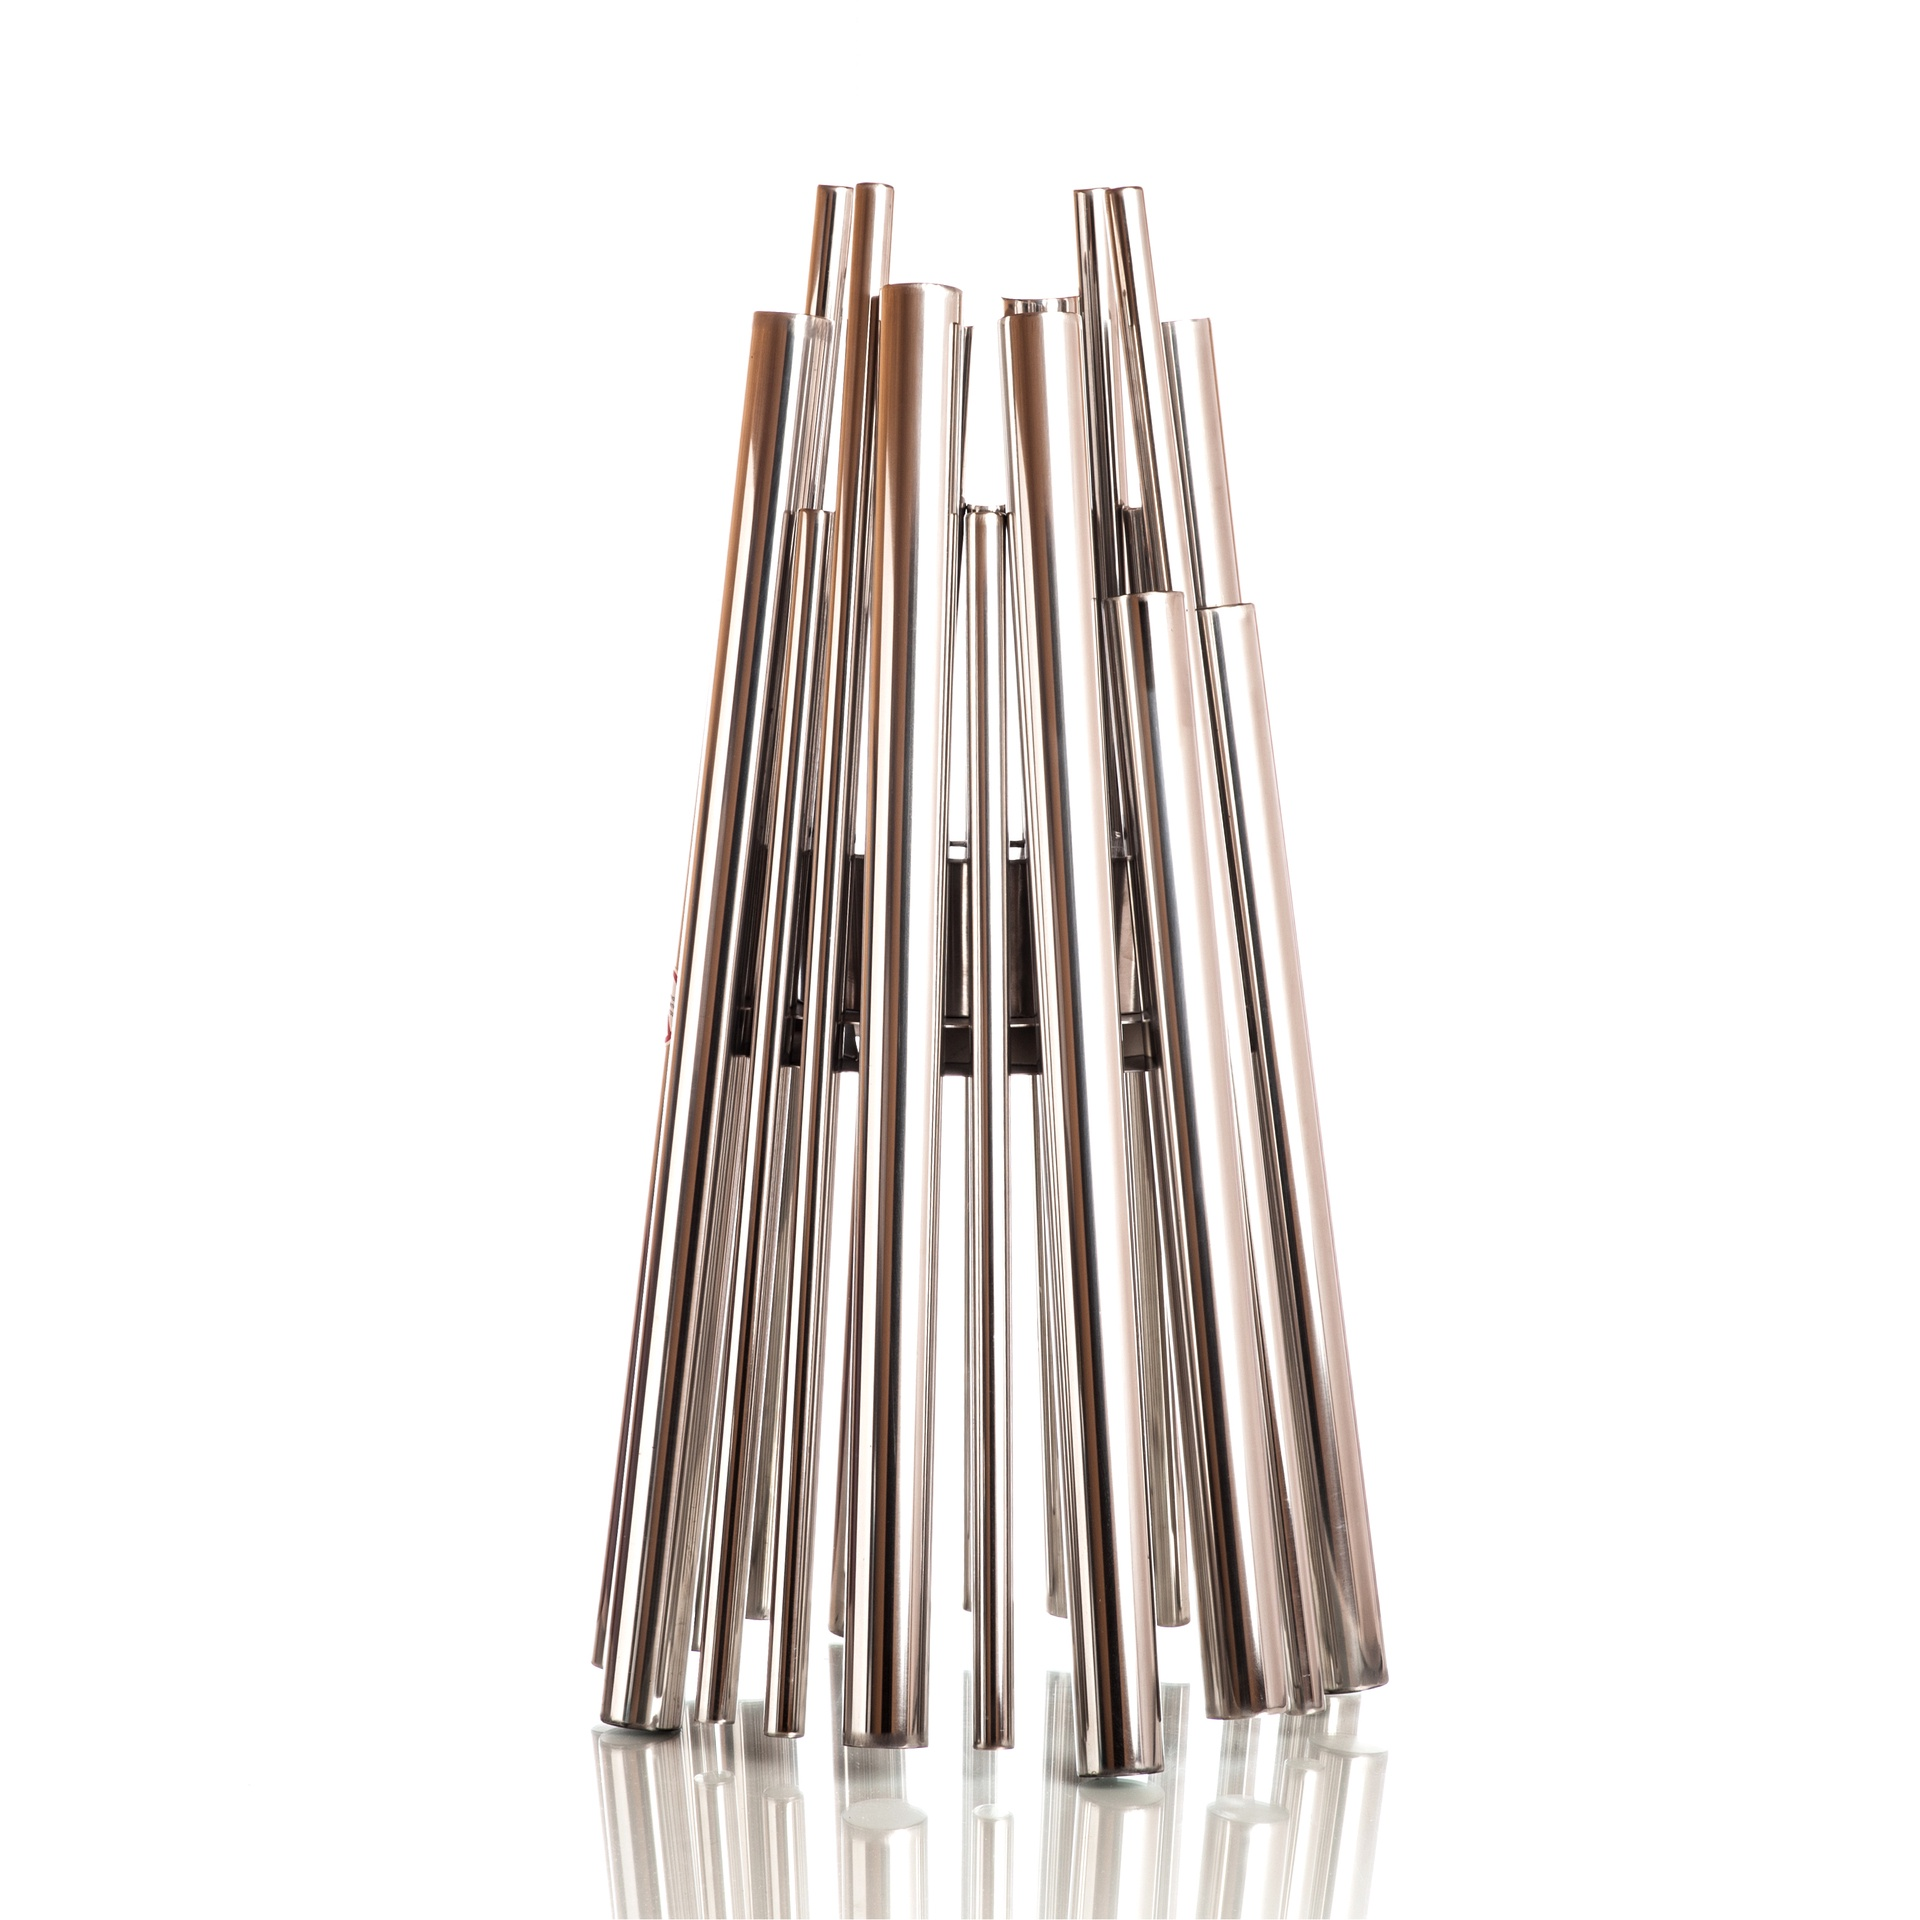 Fireplace Free Standing Bonfire Stainless Steel